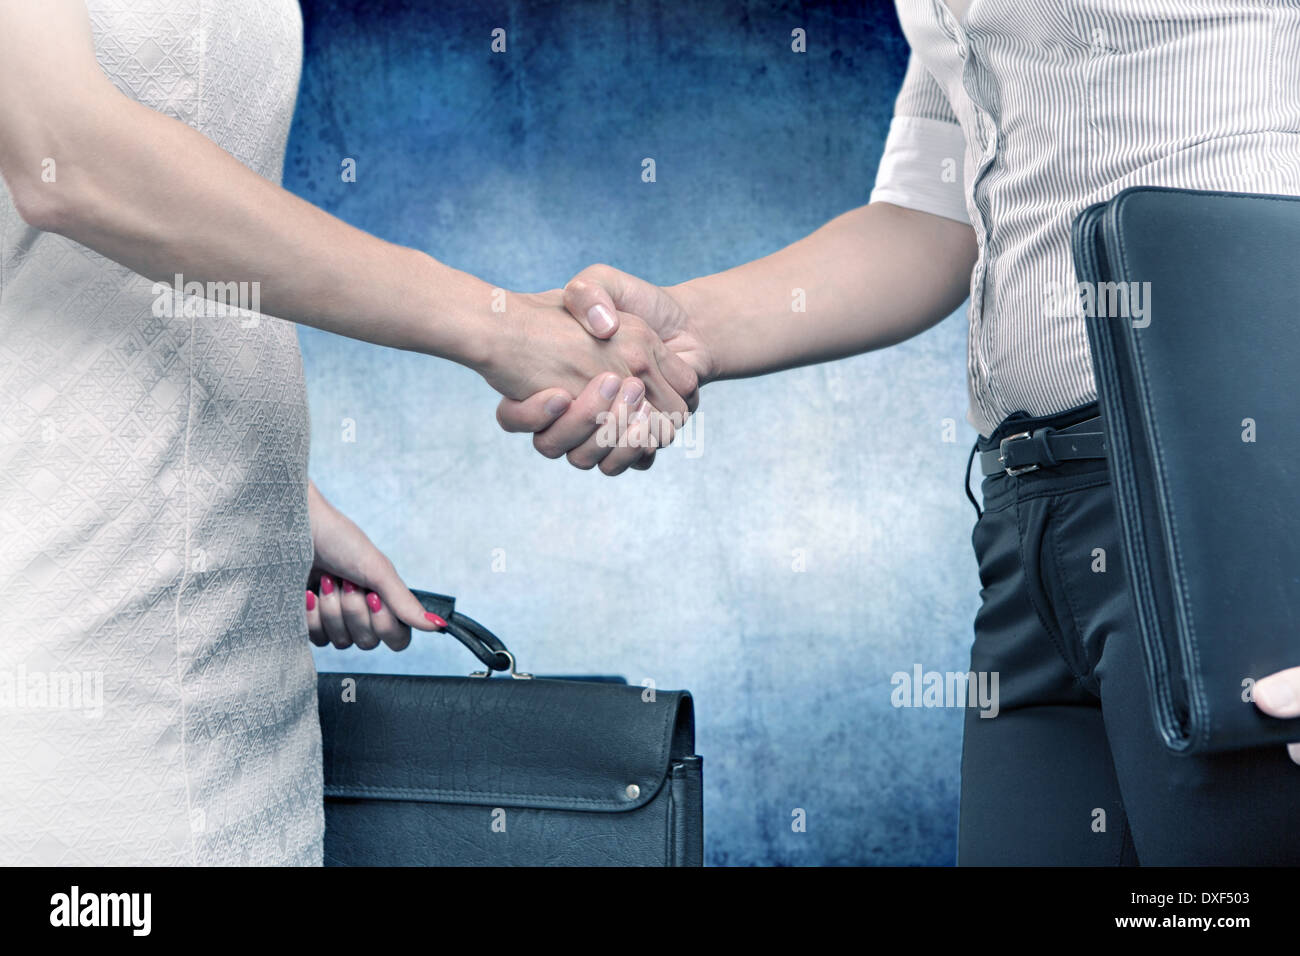 symbolic picture of two businesswomen shaking hands - Stock Image